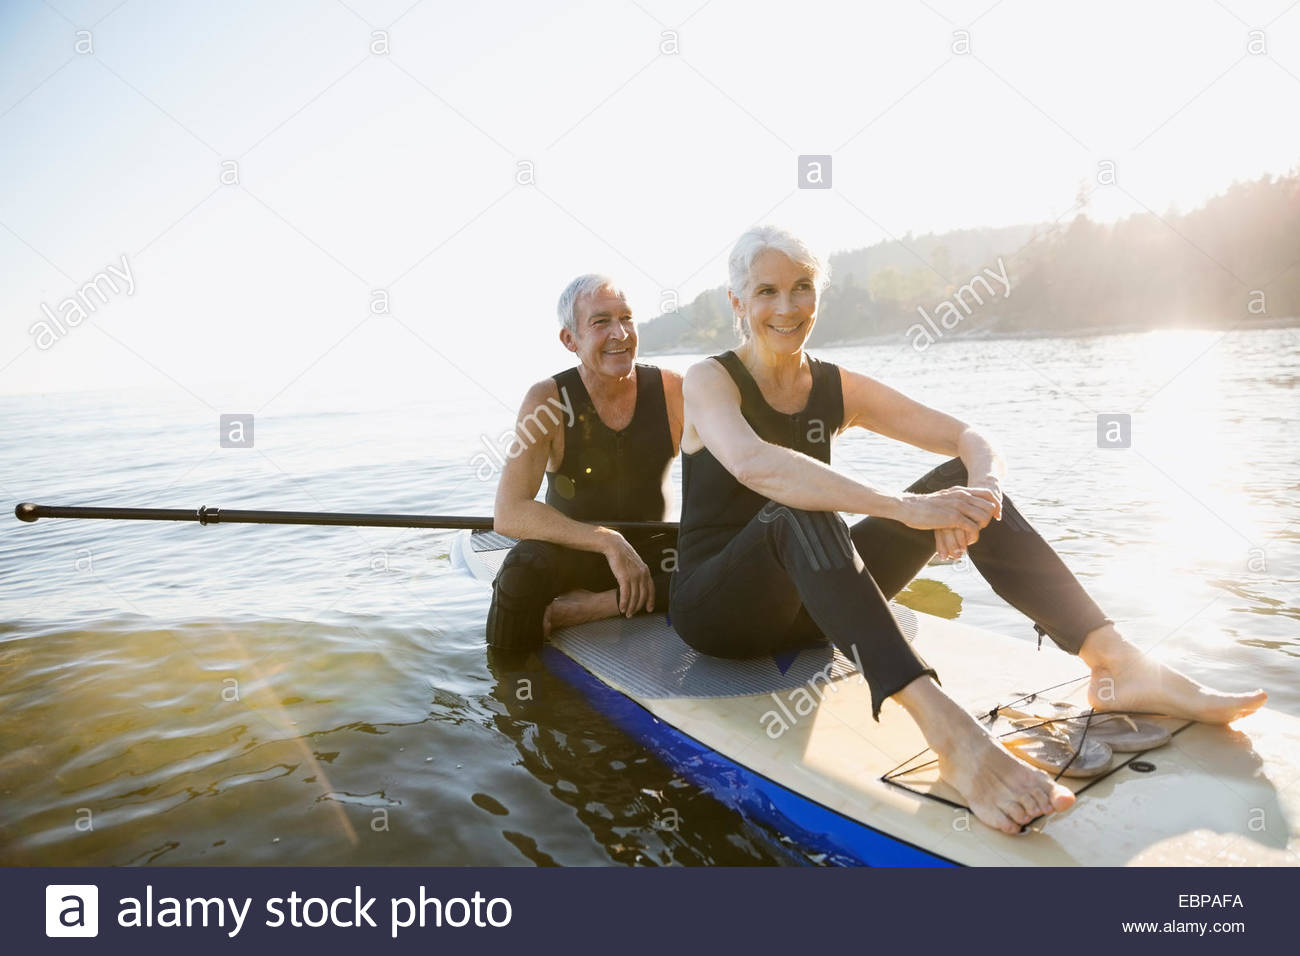 Senior couple on paddle board in ocean - Stock Image